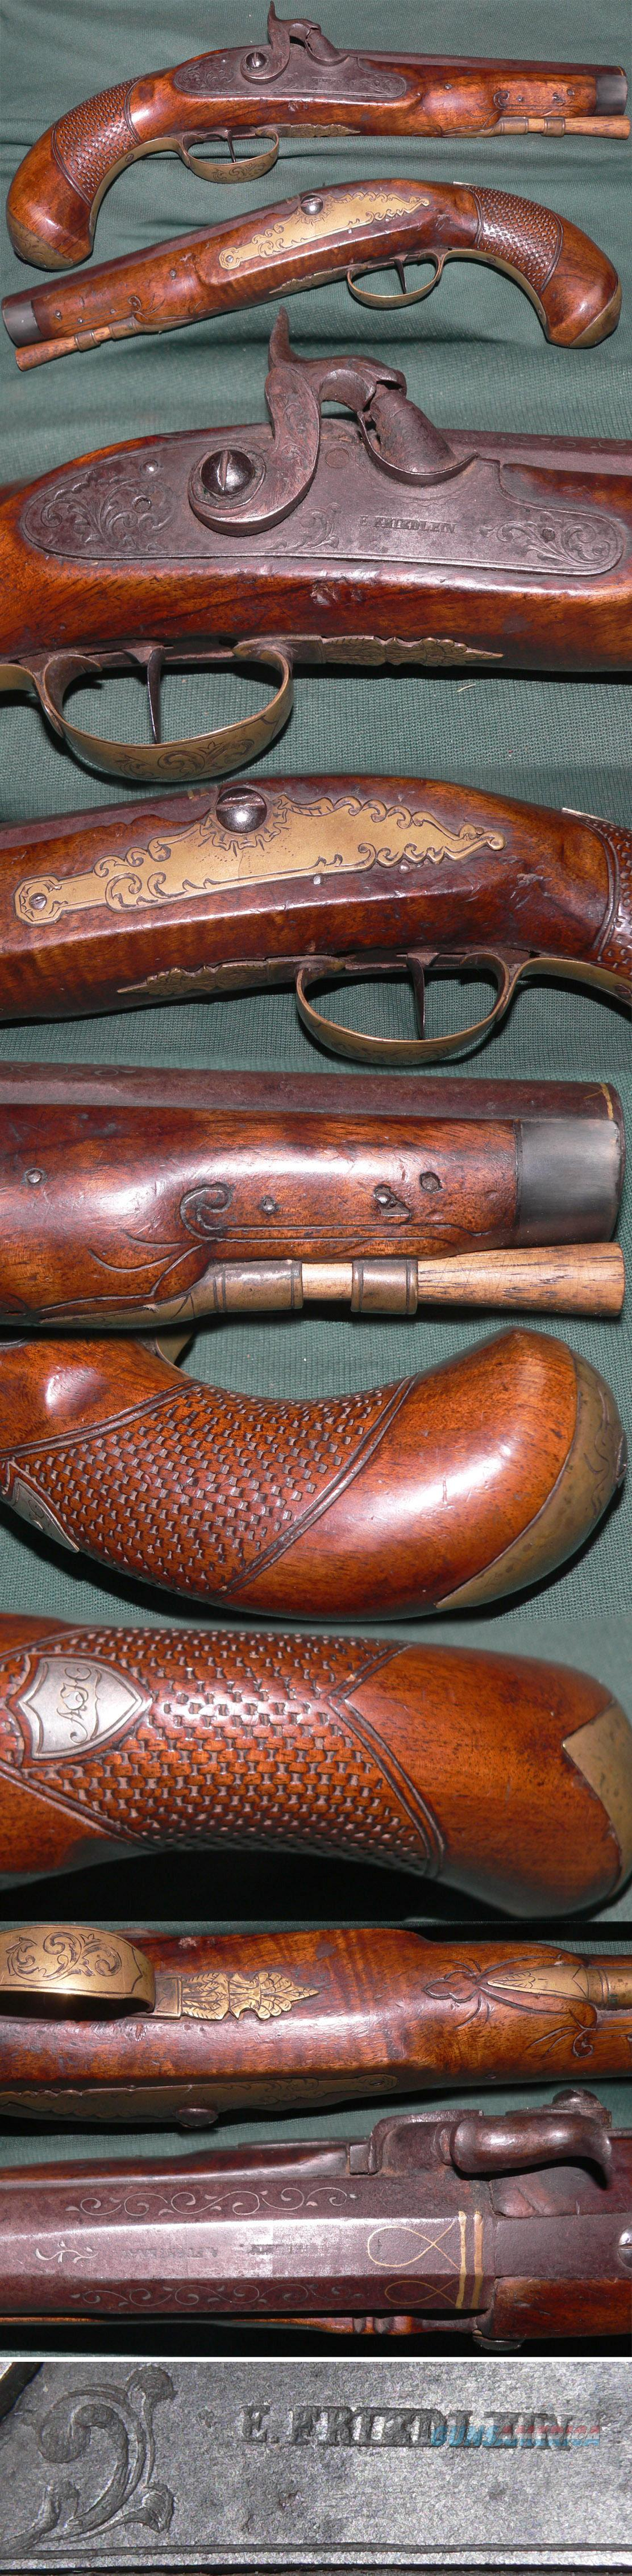 "Percussion European belt pistol marked on lock ""E.FRIEDLEIN"".  Guns > Pistols > Muzzleloading Pre-1899 Pistols (perc)"